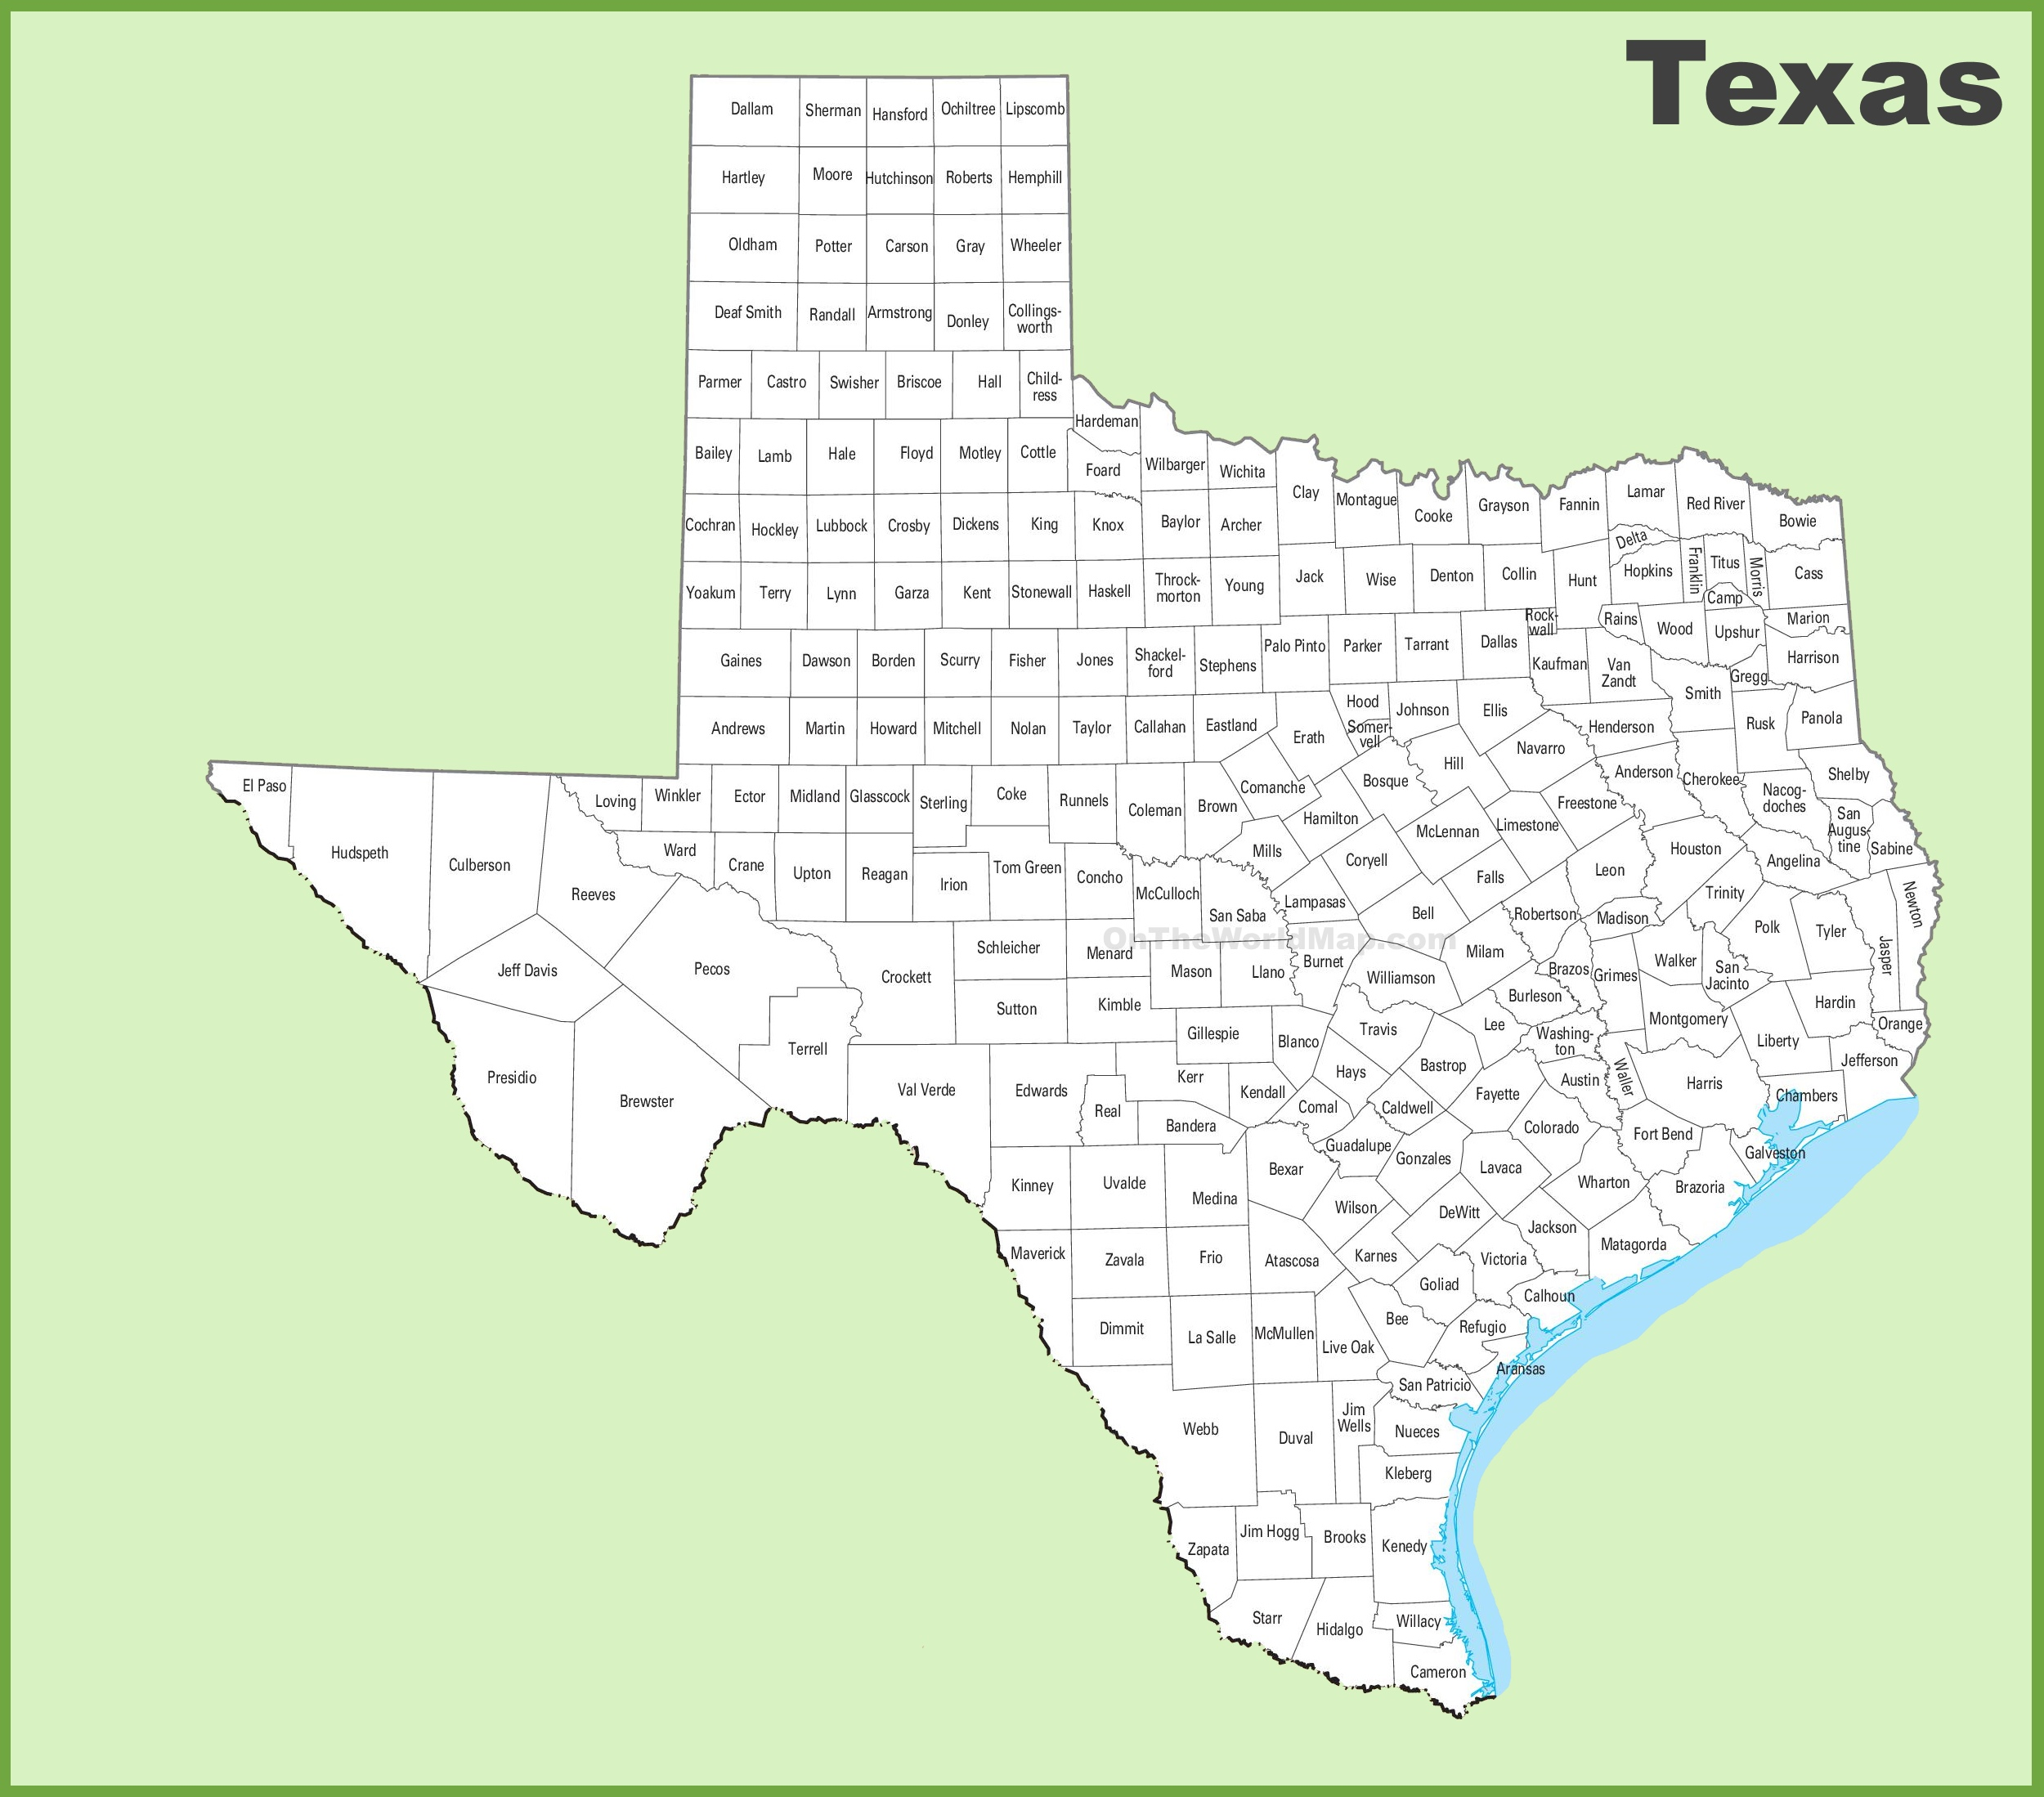 Texas County Map - Trxas map